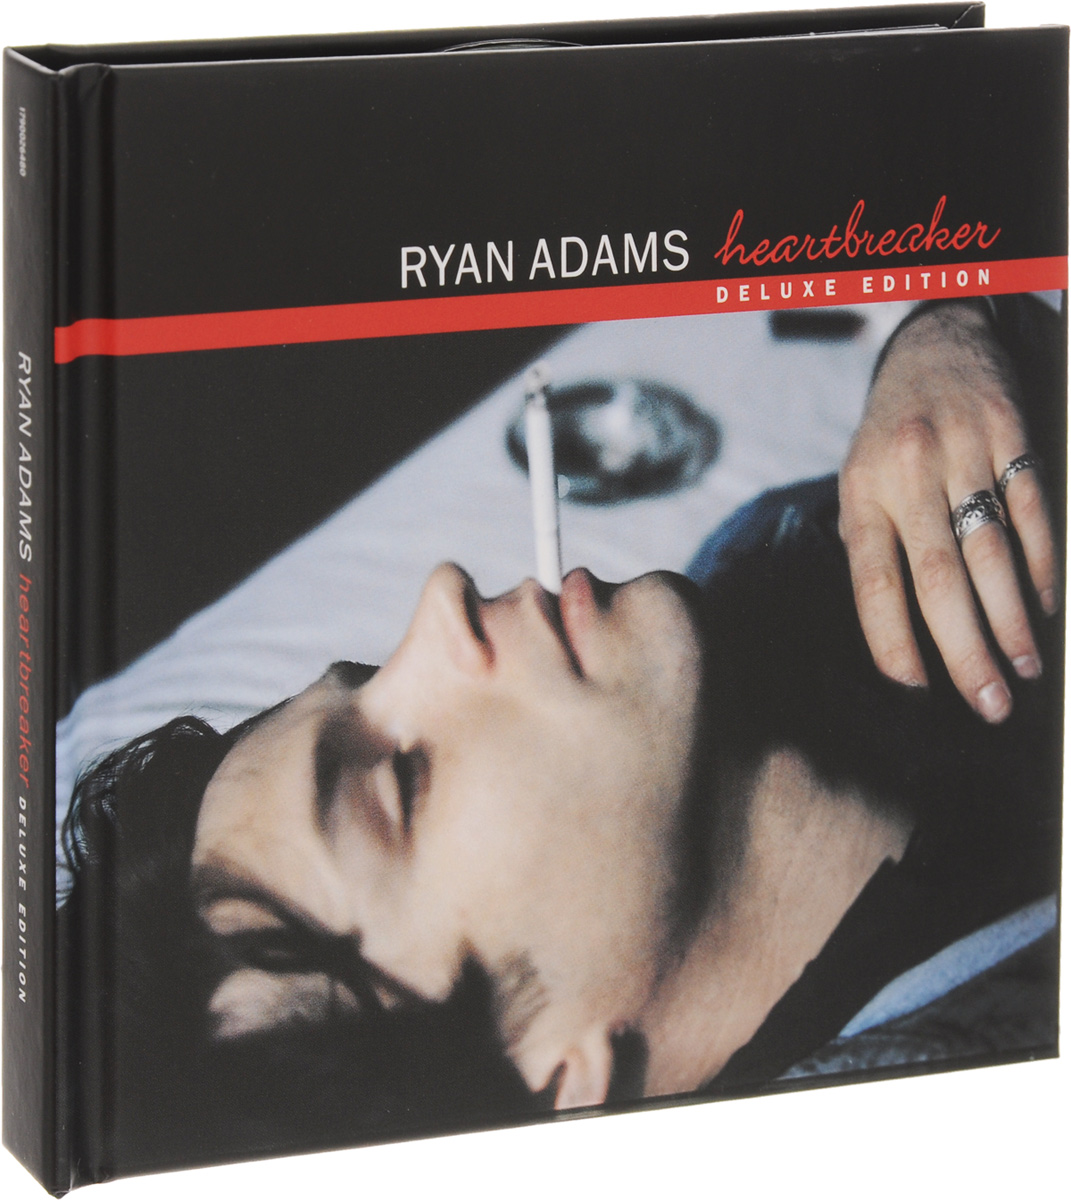 Брайан Адамс Ryan Adams. Heartbreaker. Deluxe Edition (2 CD + DVD) fleetwood mac –tusk deluxe edition 2 lp 5 cd dvd